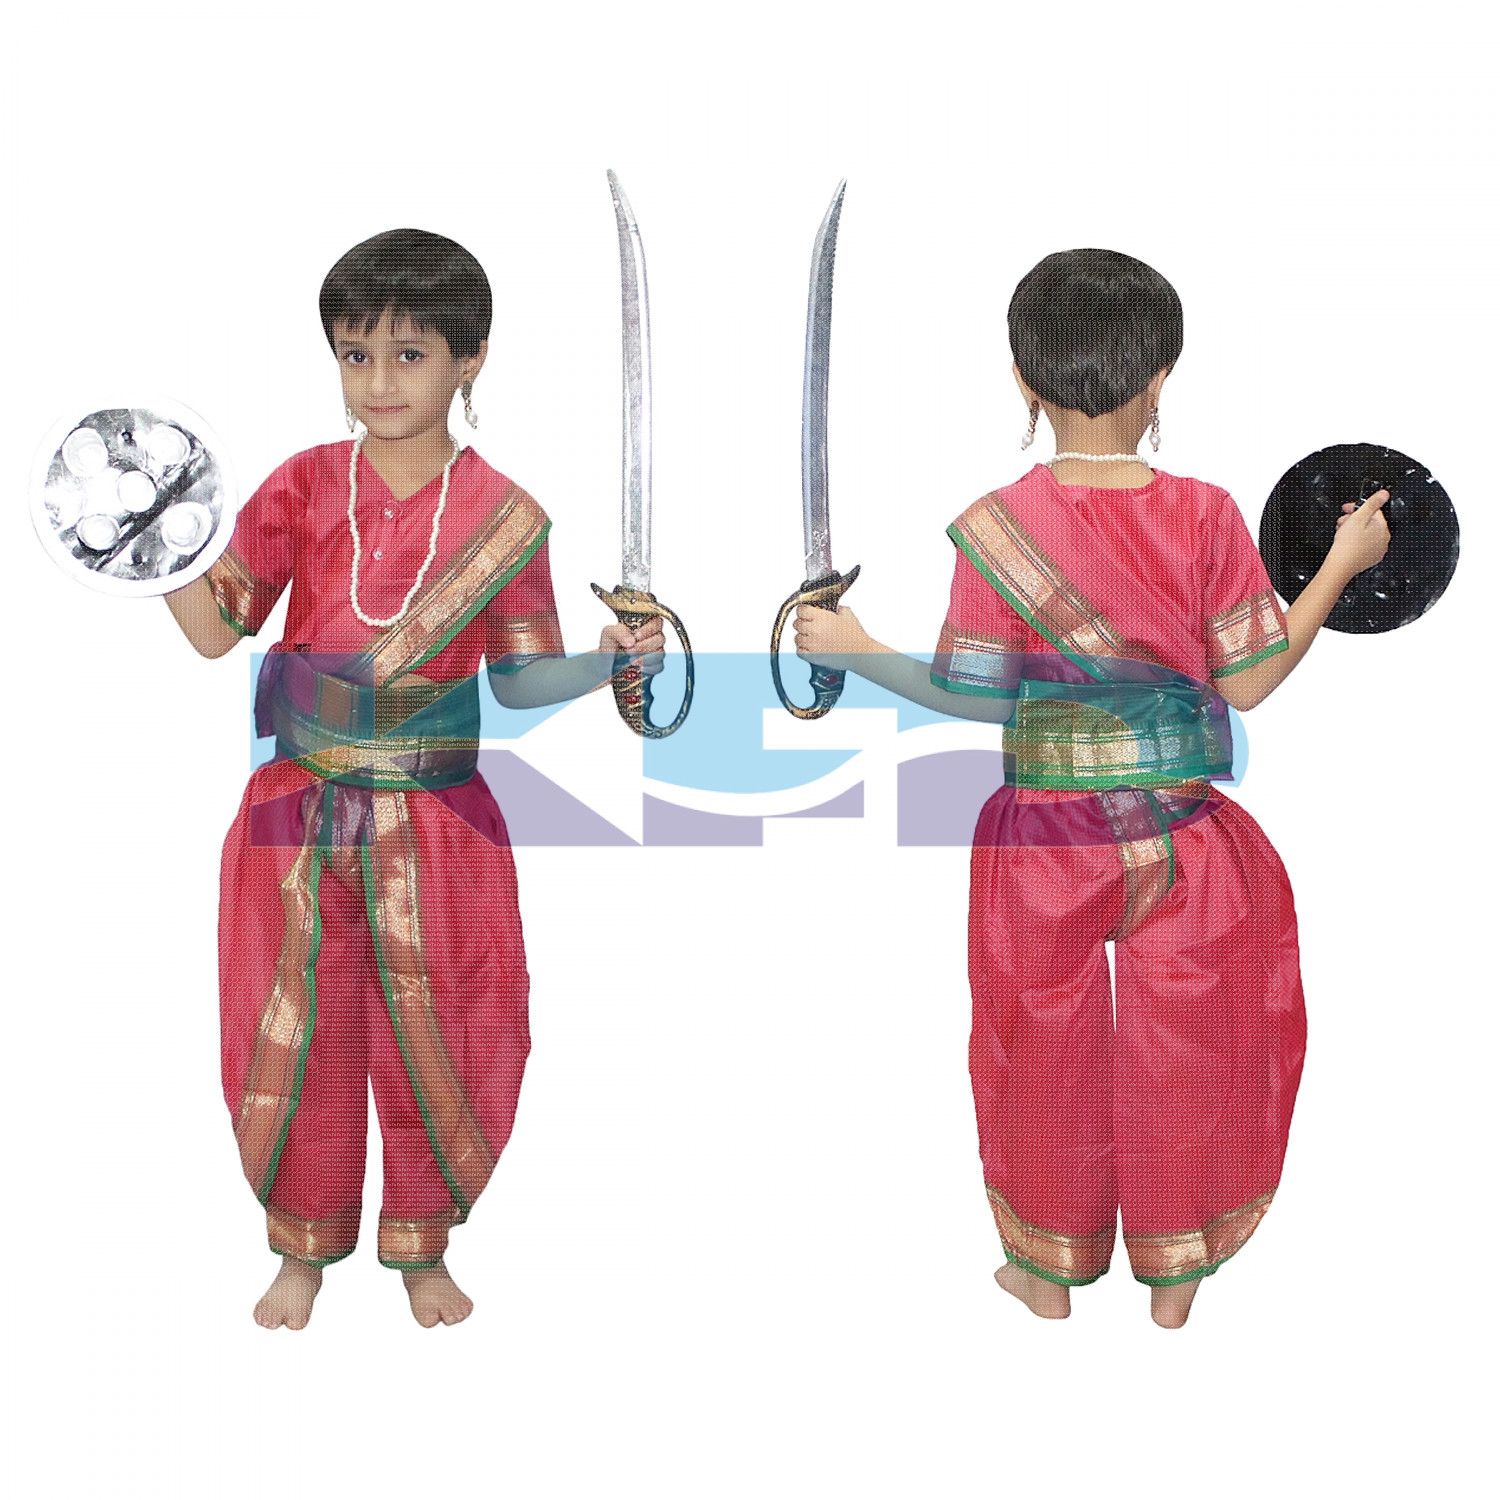 Rani Laxmi Bai fancy dress for kids,National Hero/freedom figter Costume for Independence Day/Republic Day/Annual function/theme party/Competition/Stage Shows Dress